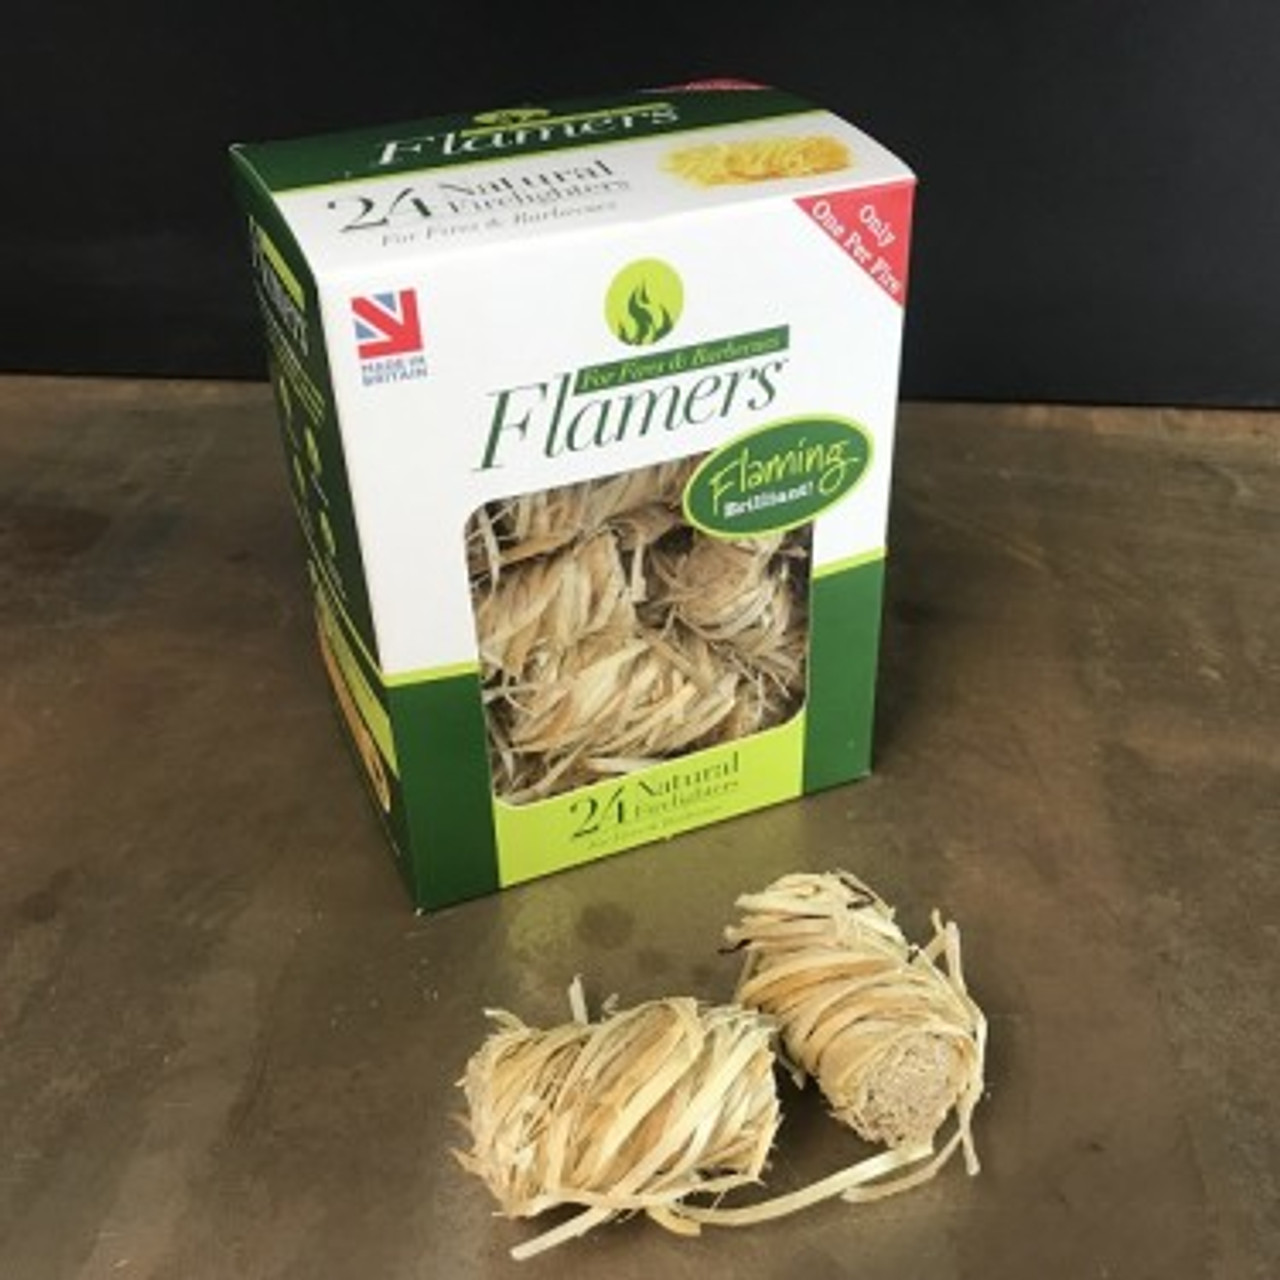 Flamers Firelighters (Box 24)